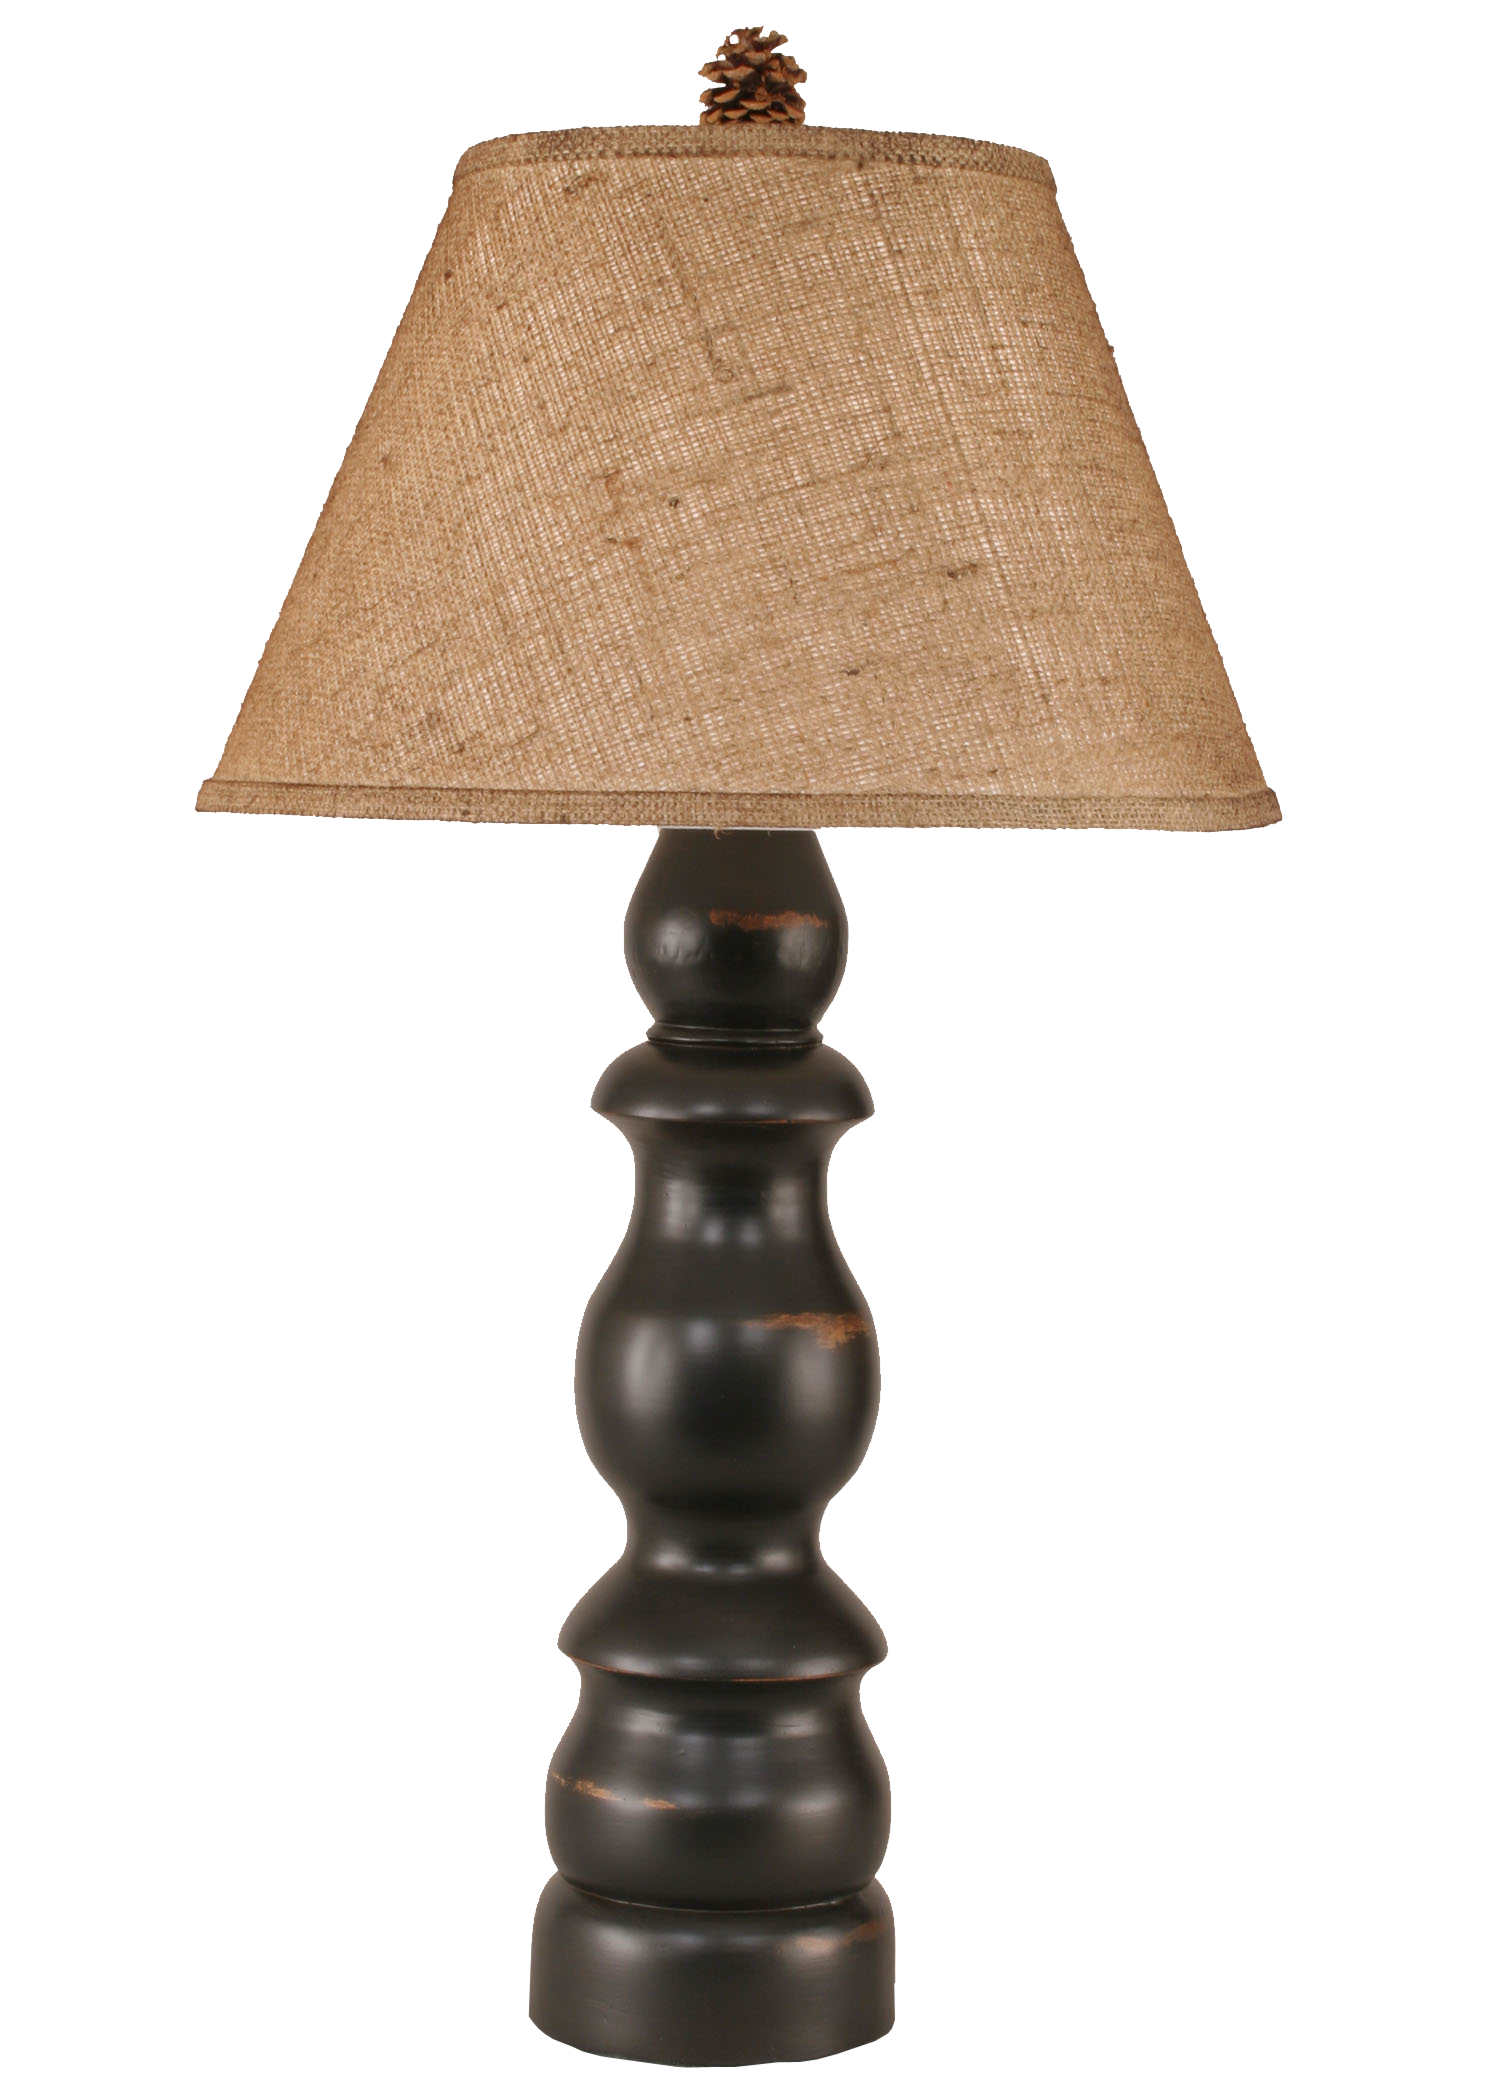 Distressed Black Farmhouse Table Lamp w/ Real Pine Cone Accent - Coast Lamp Shop